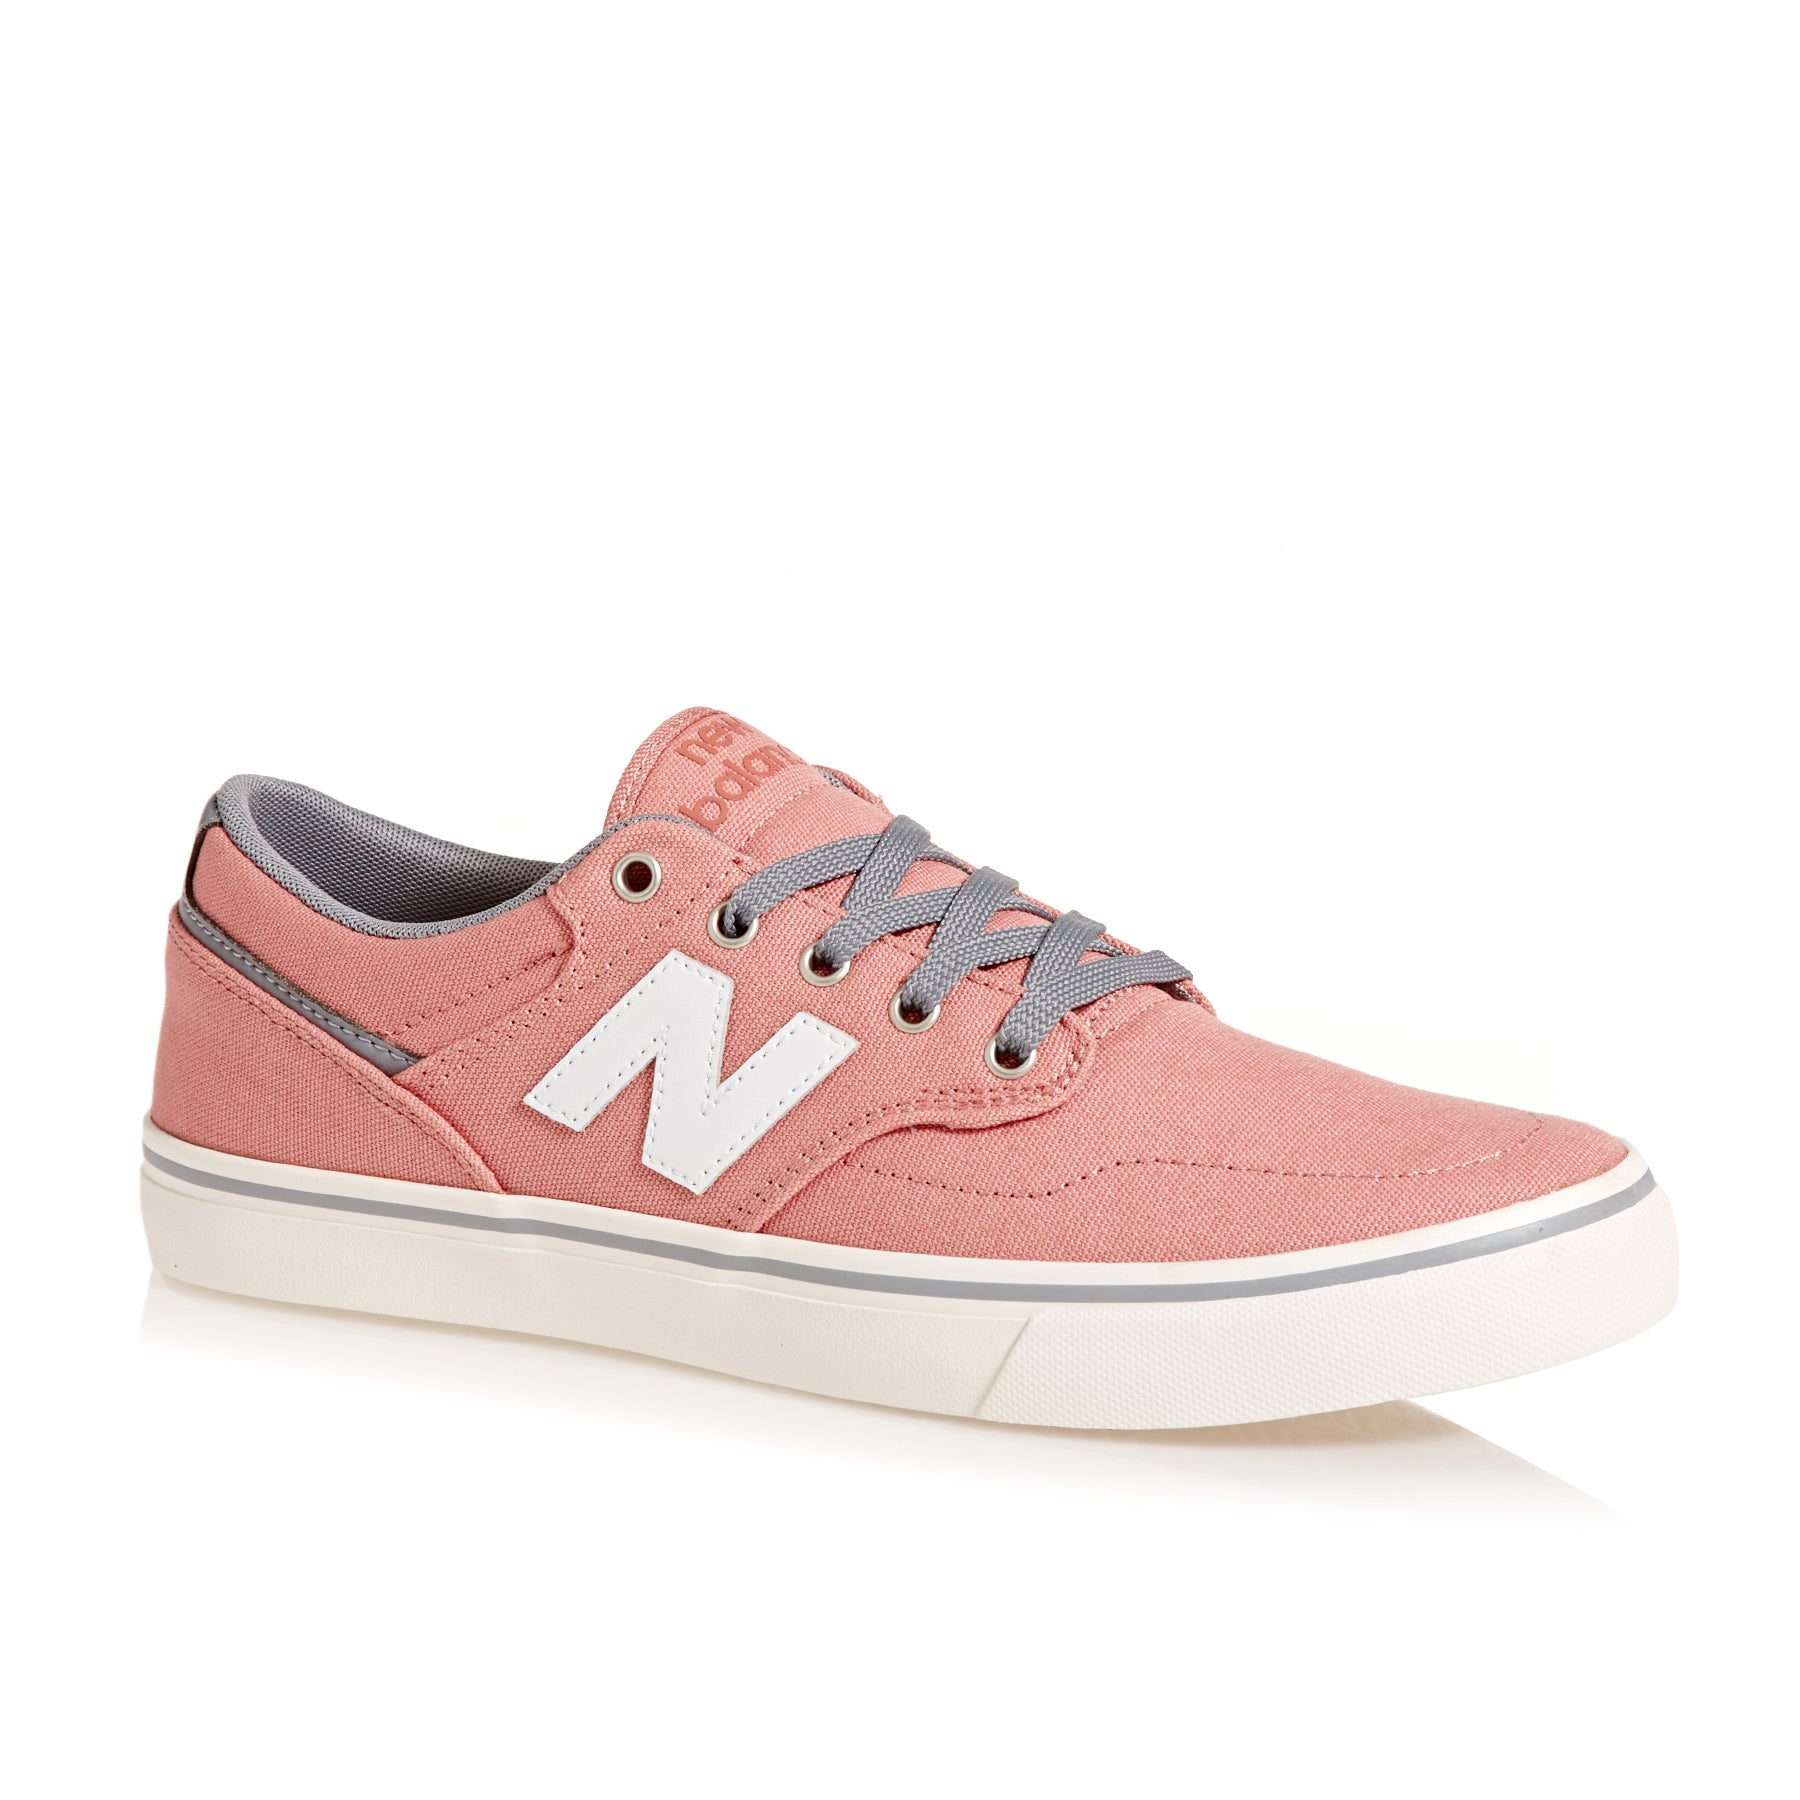 b37eeab882fc7 New Balance Am331 Shoes | Free Delivery* on All Orders